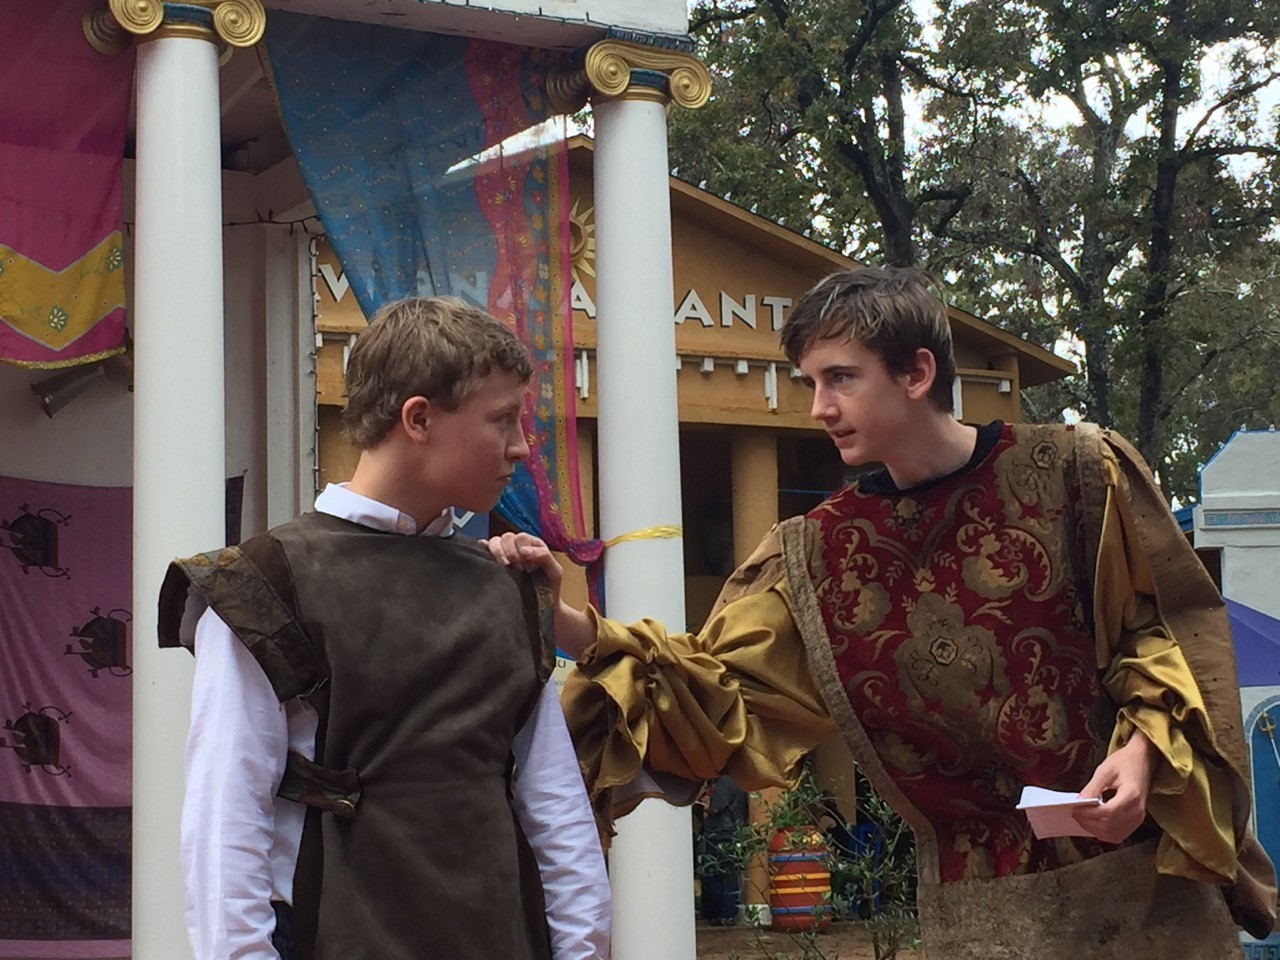 Senior High ODA Competitive Theater group wins 2nd place at Texas Ren Fest